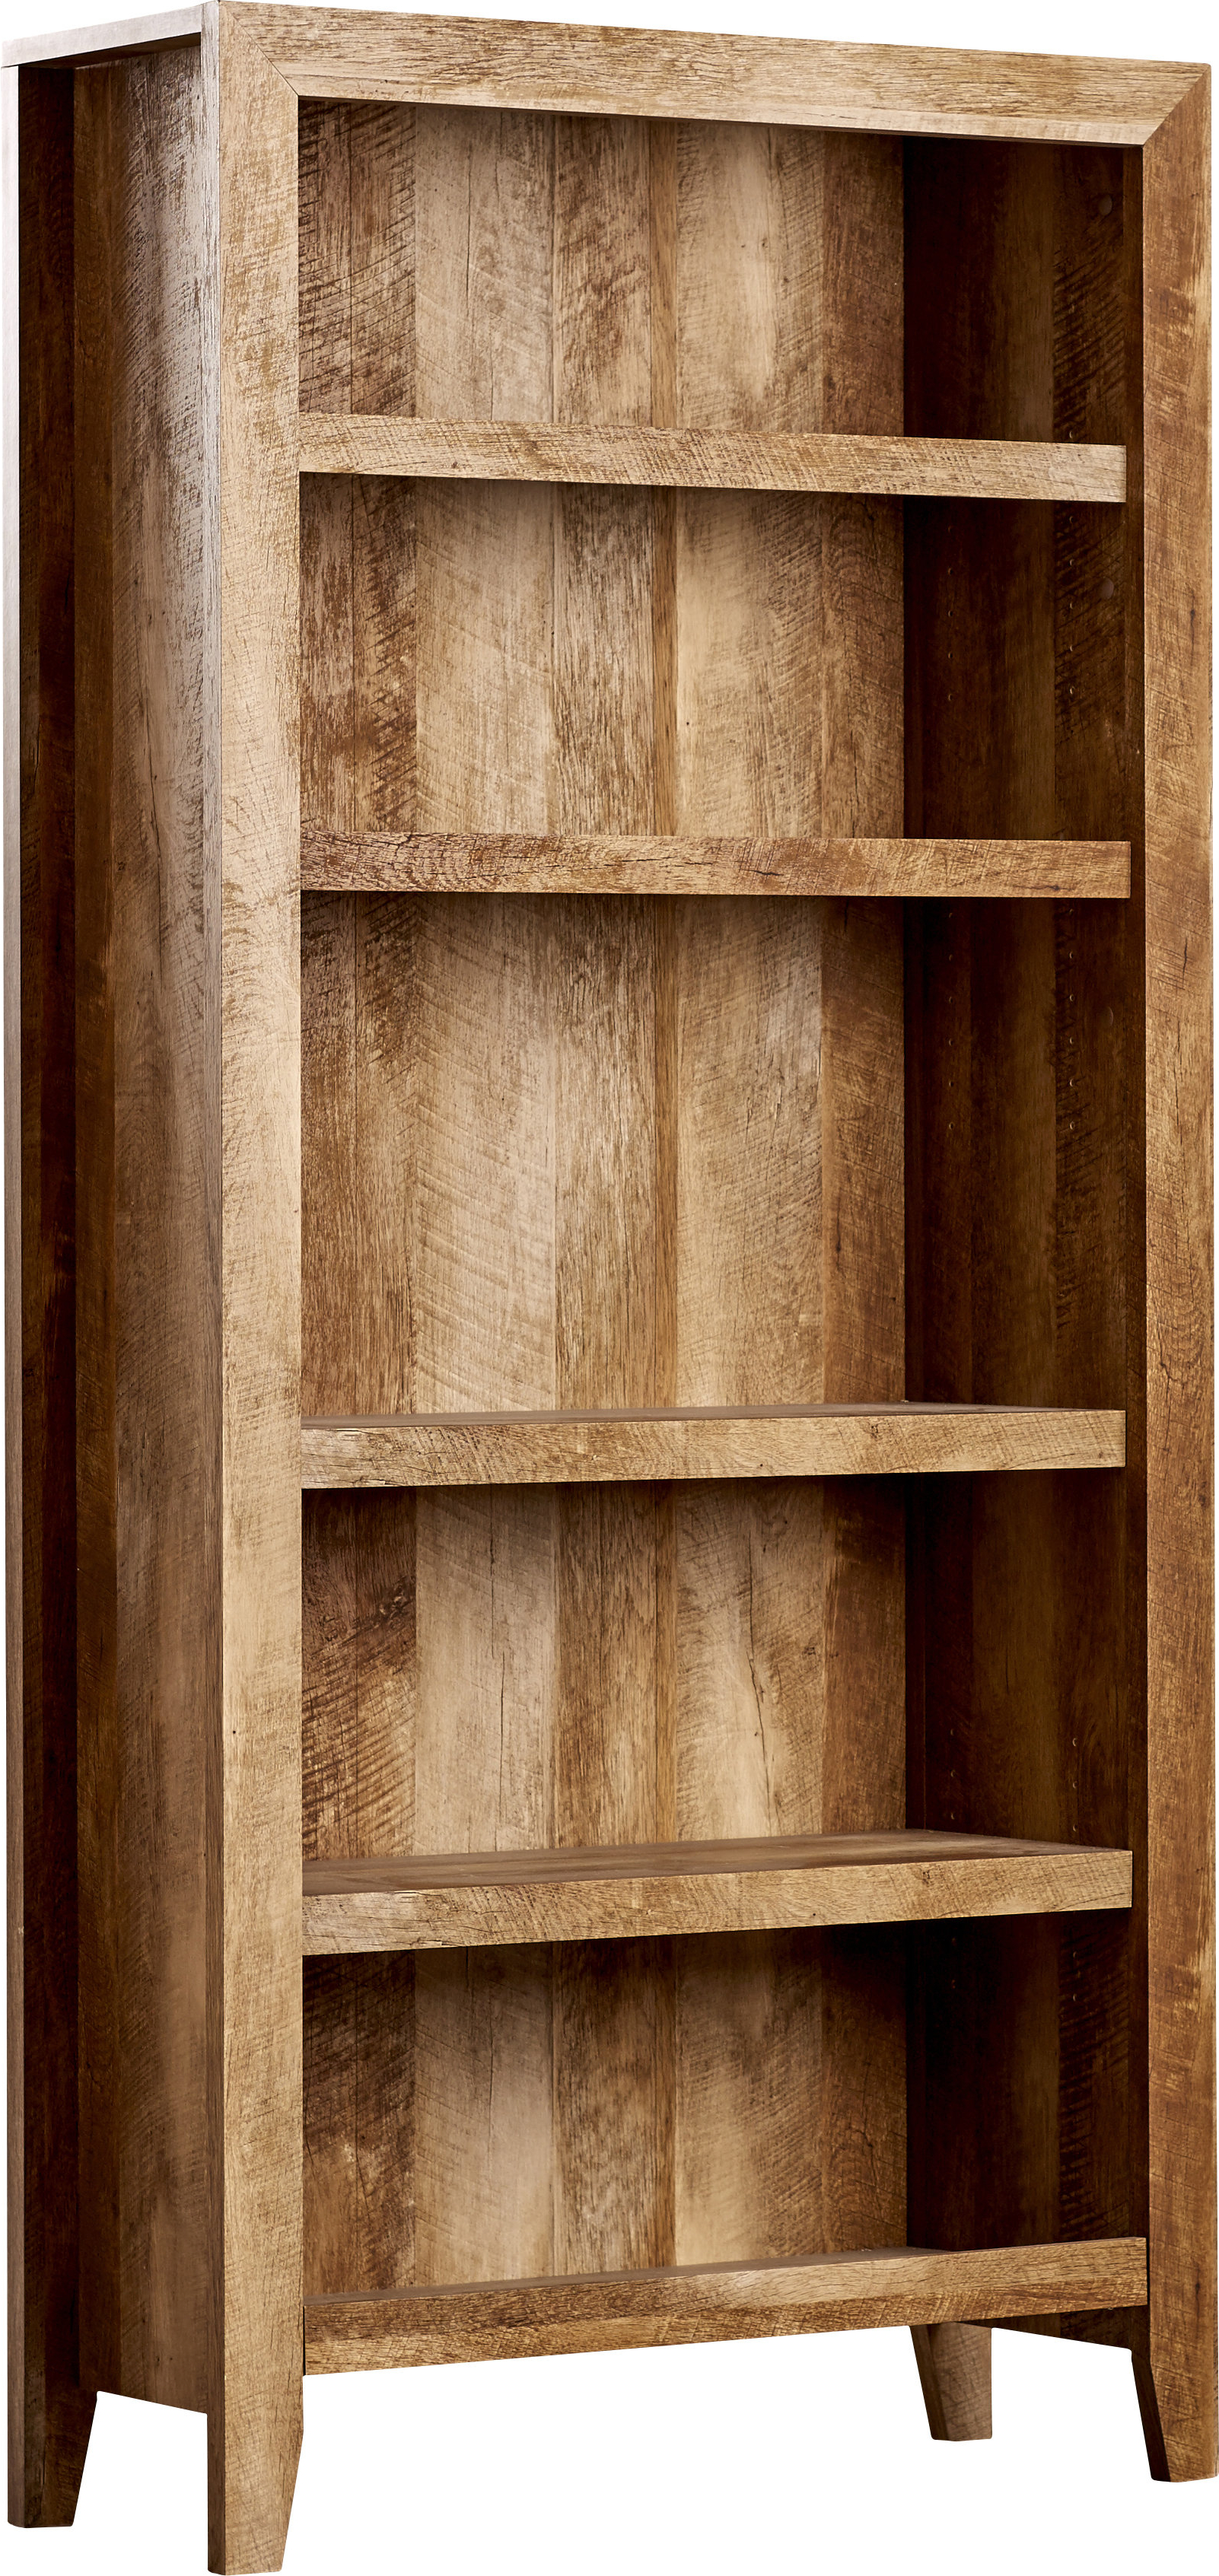 Modern Standard Bookcases (View 14 of 20)